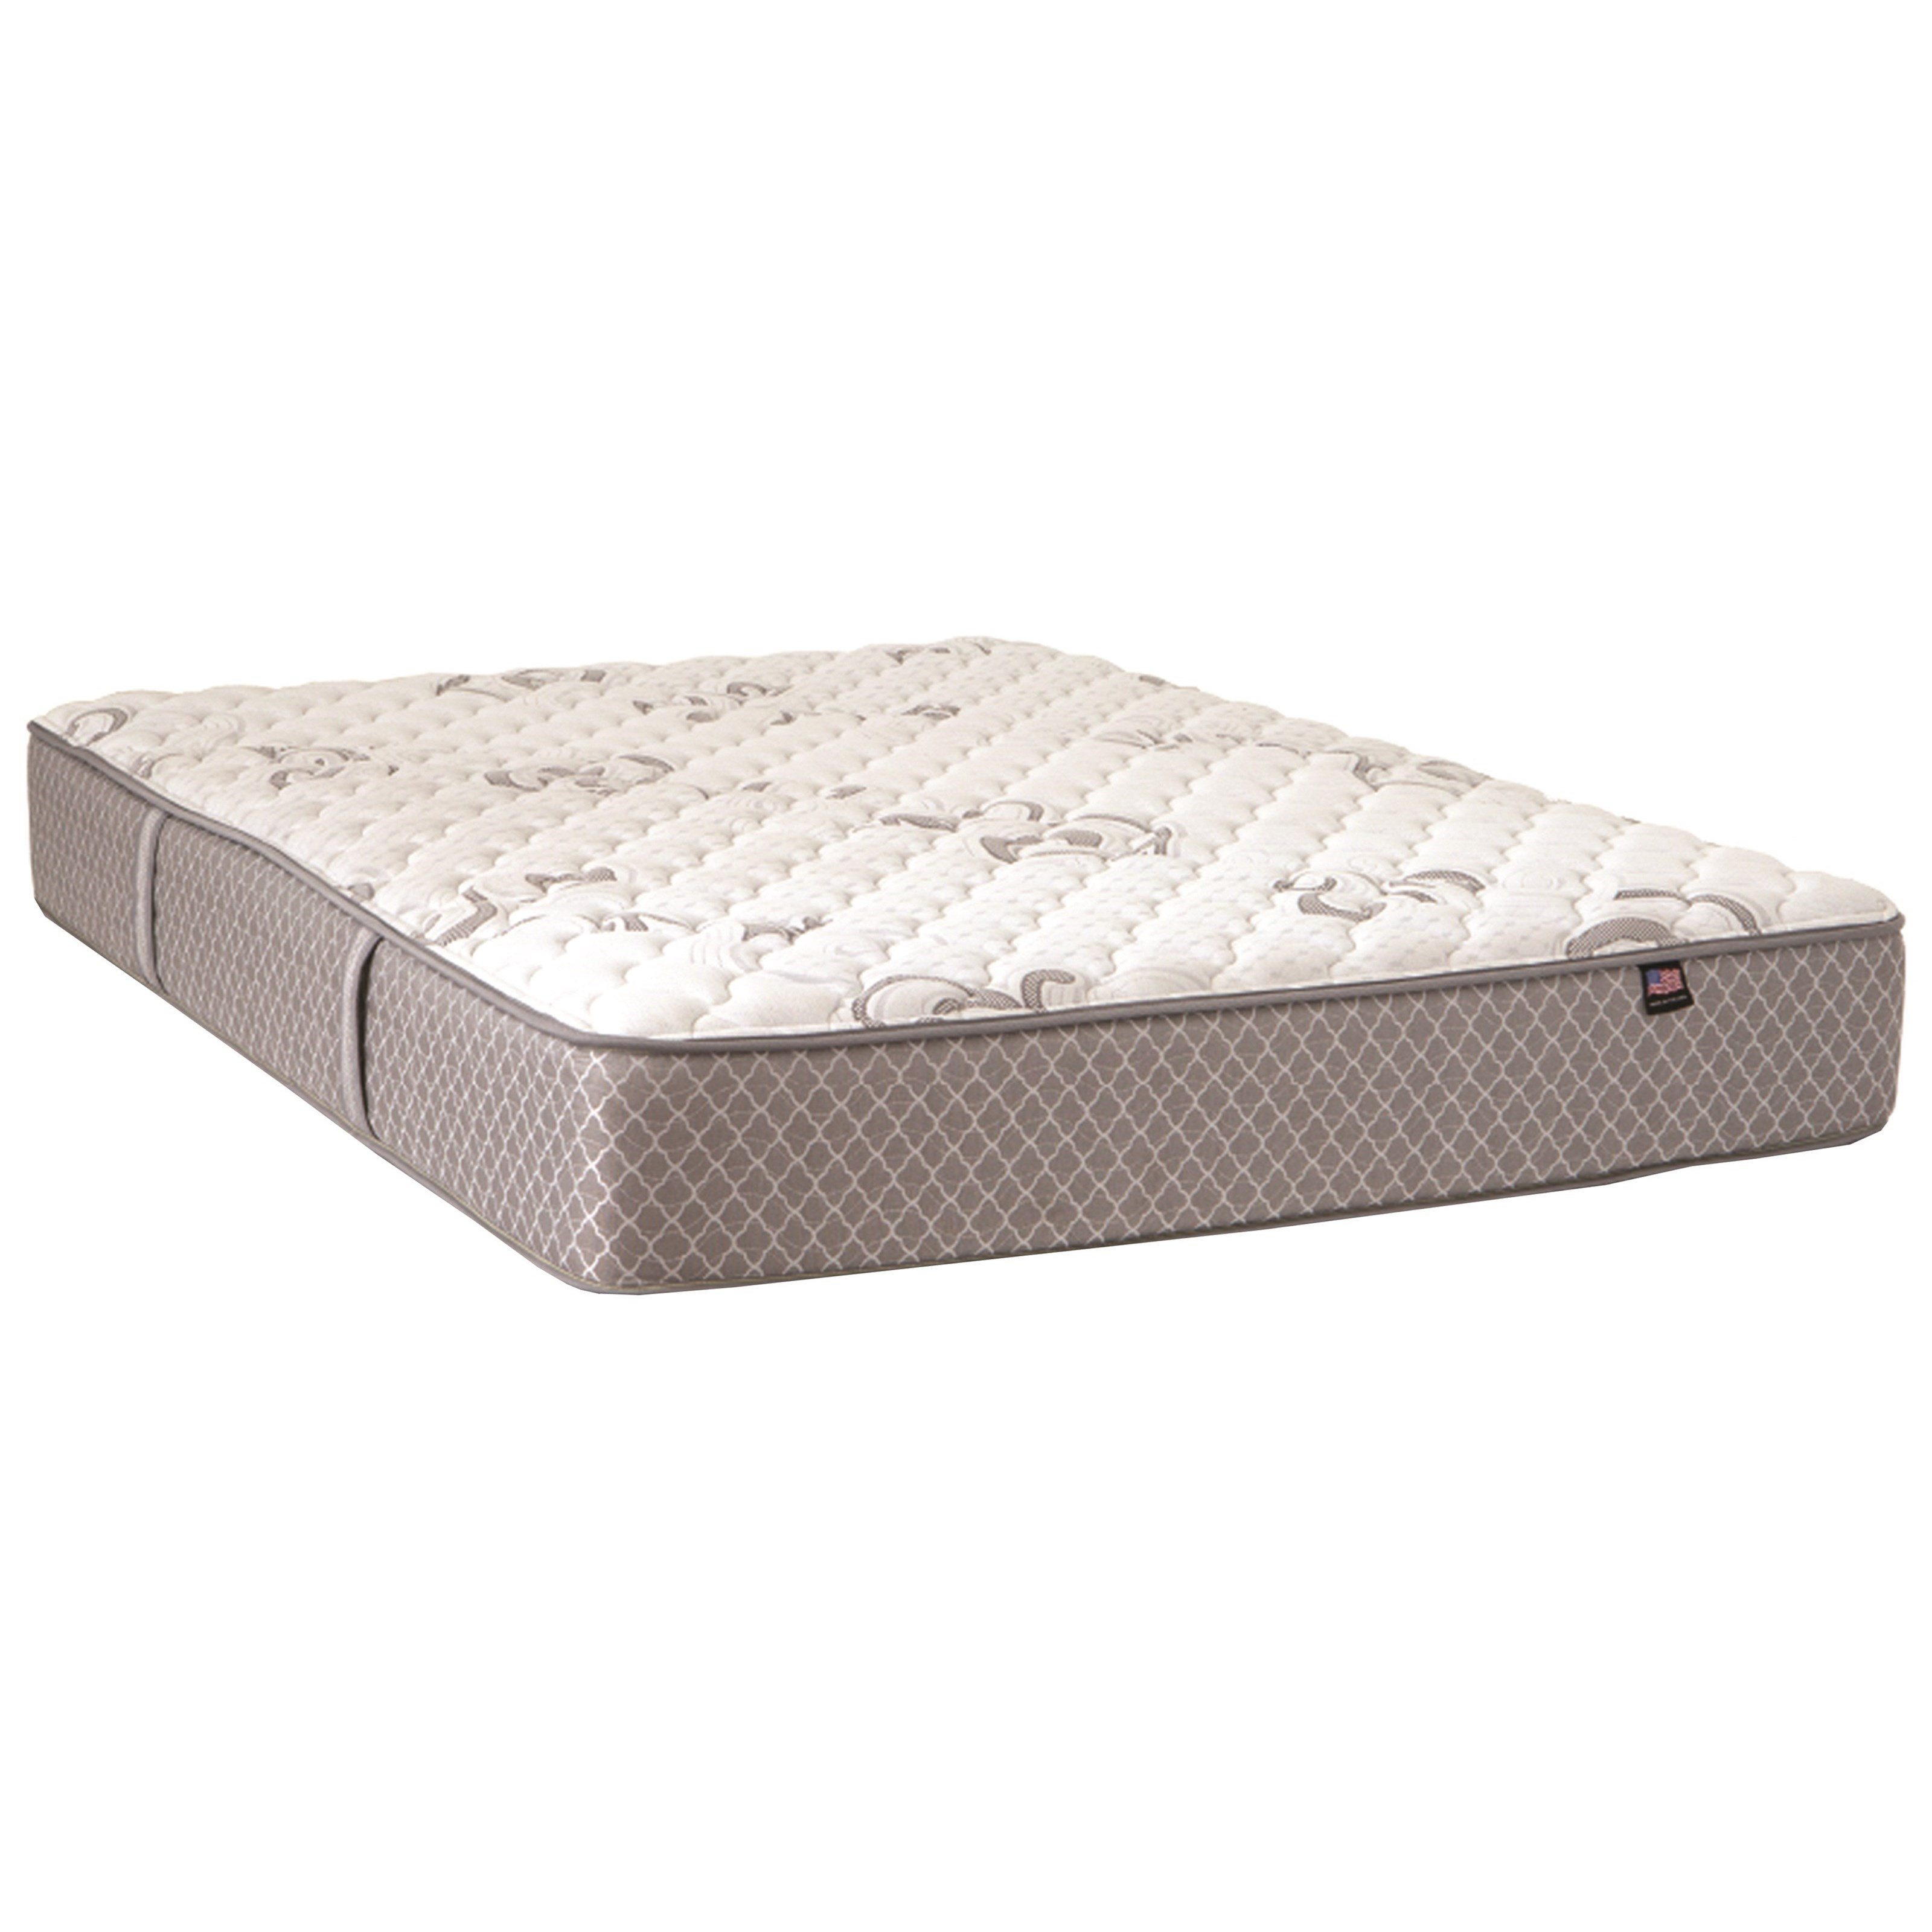 Broadway Firm Queen Firm Mattress by Therapedic at Darvin Furniture